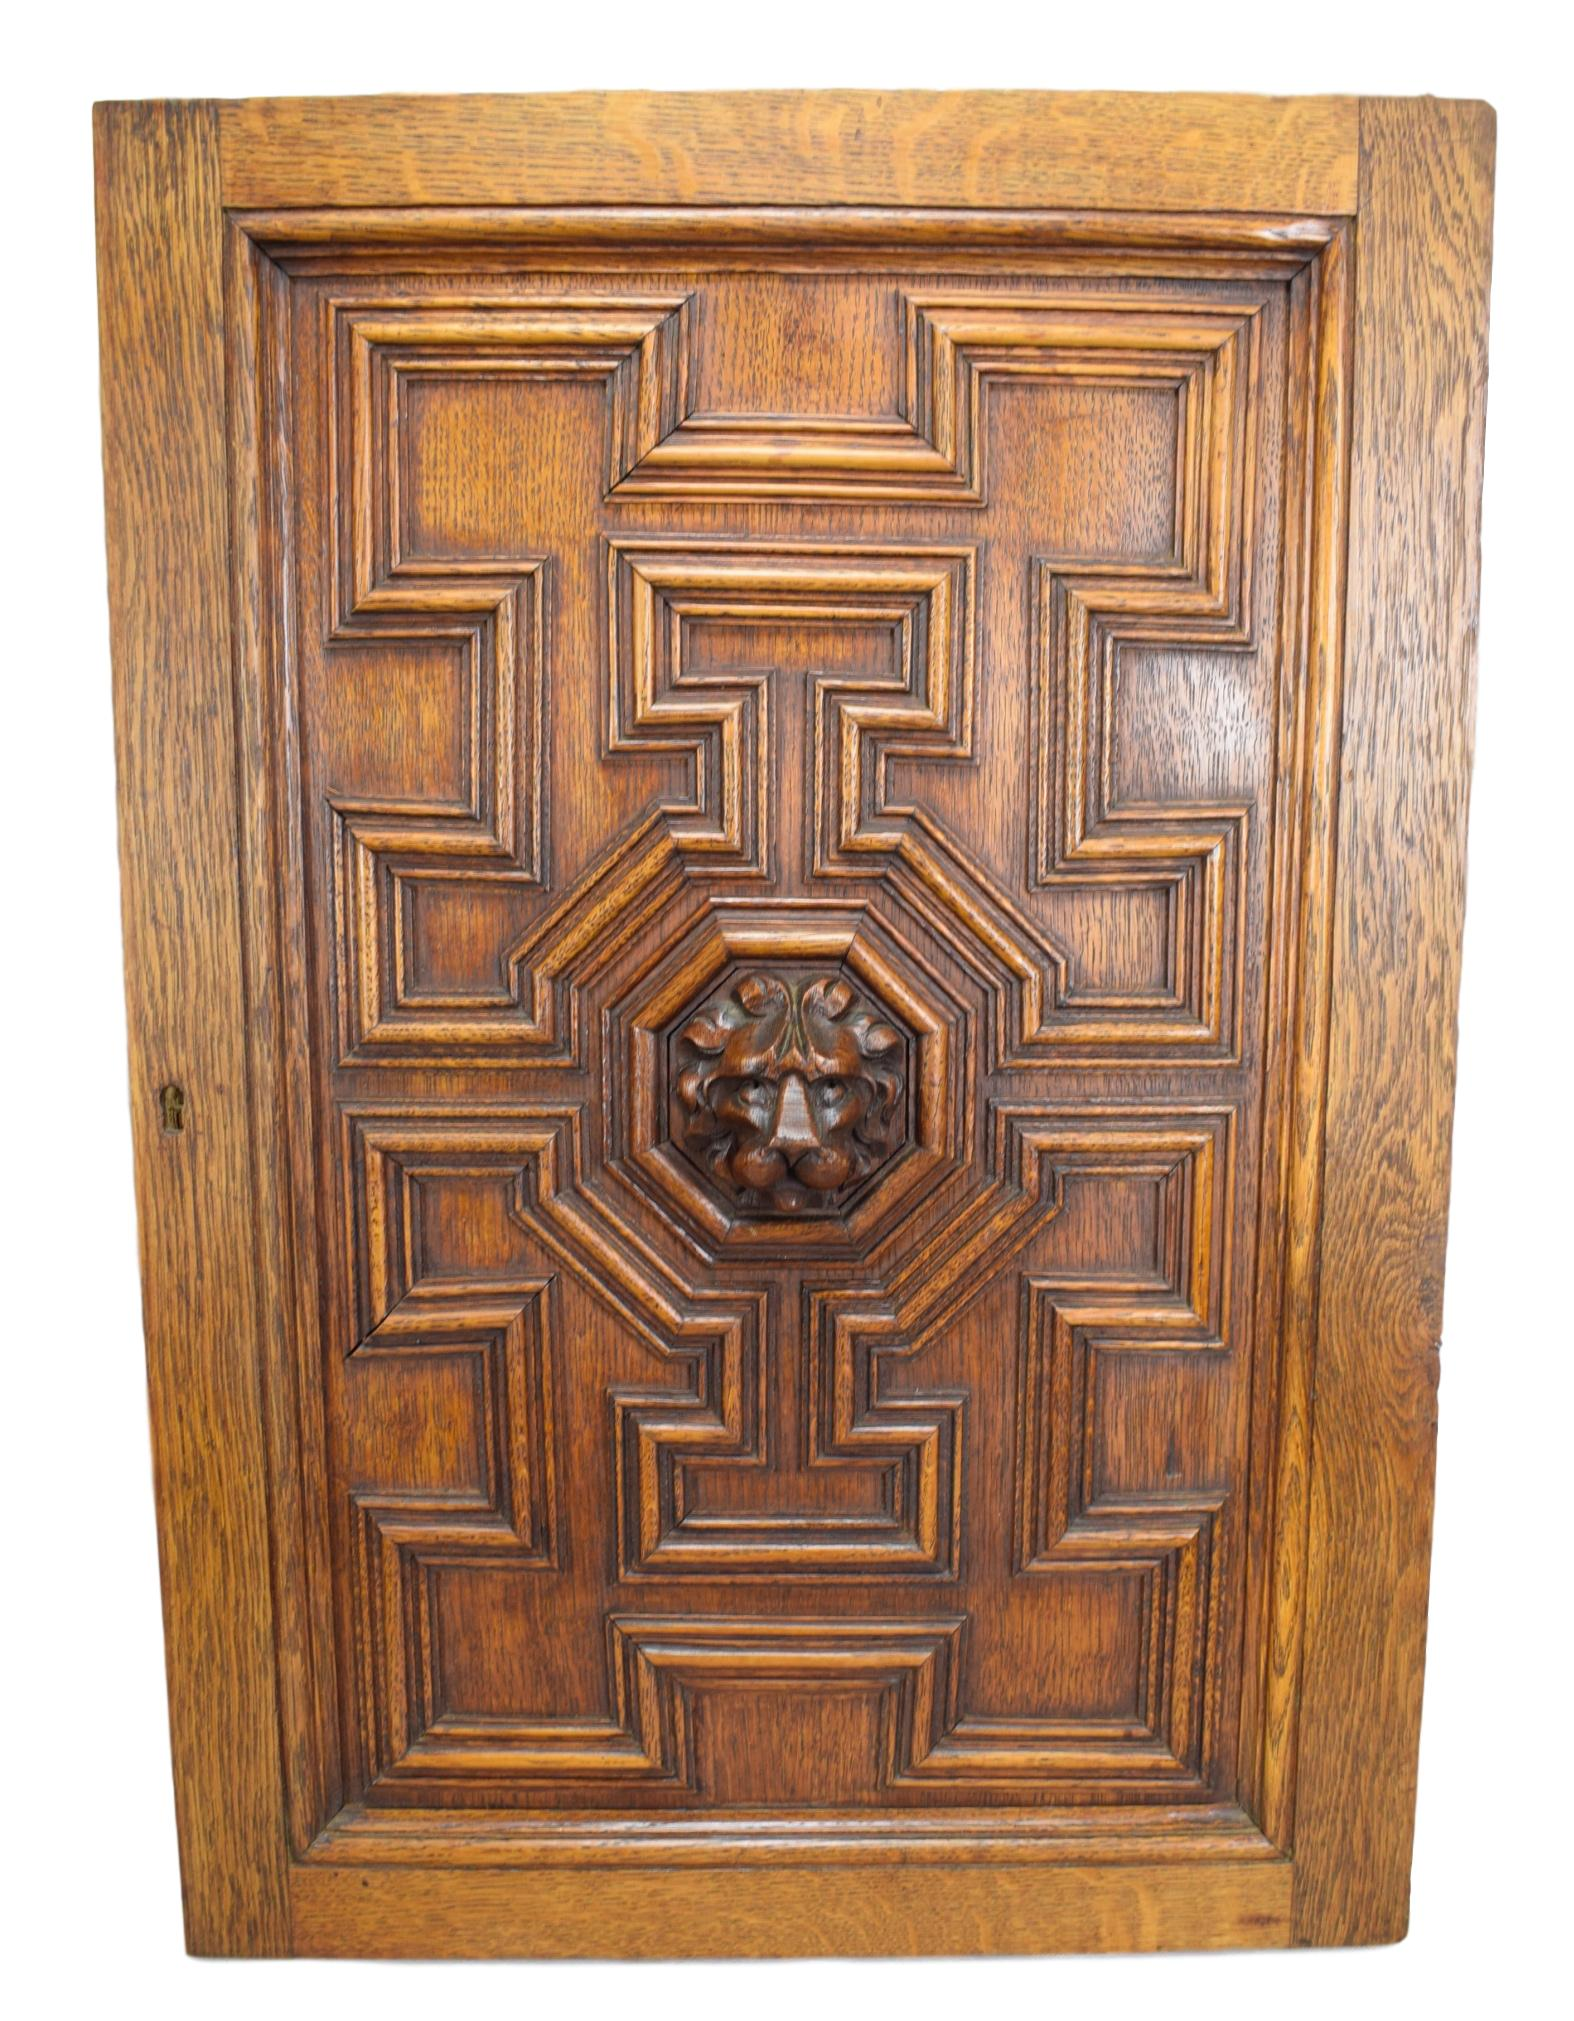 French Architectural Gothic Hand Carved Lion Oak Wood Door Wall Panel 2 Right - Old Wall Panel 19th.C - Lion Cabin Door